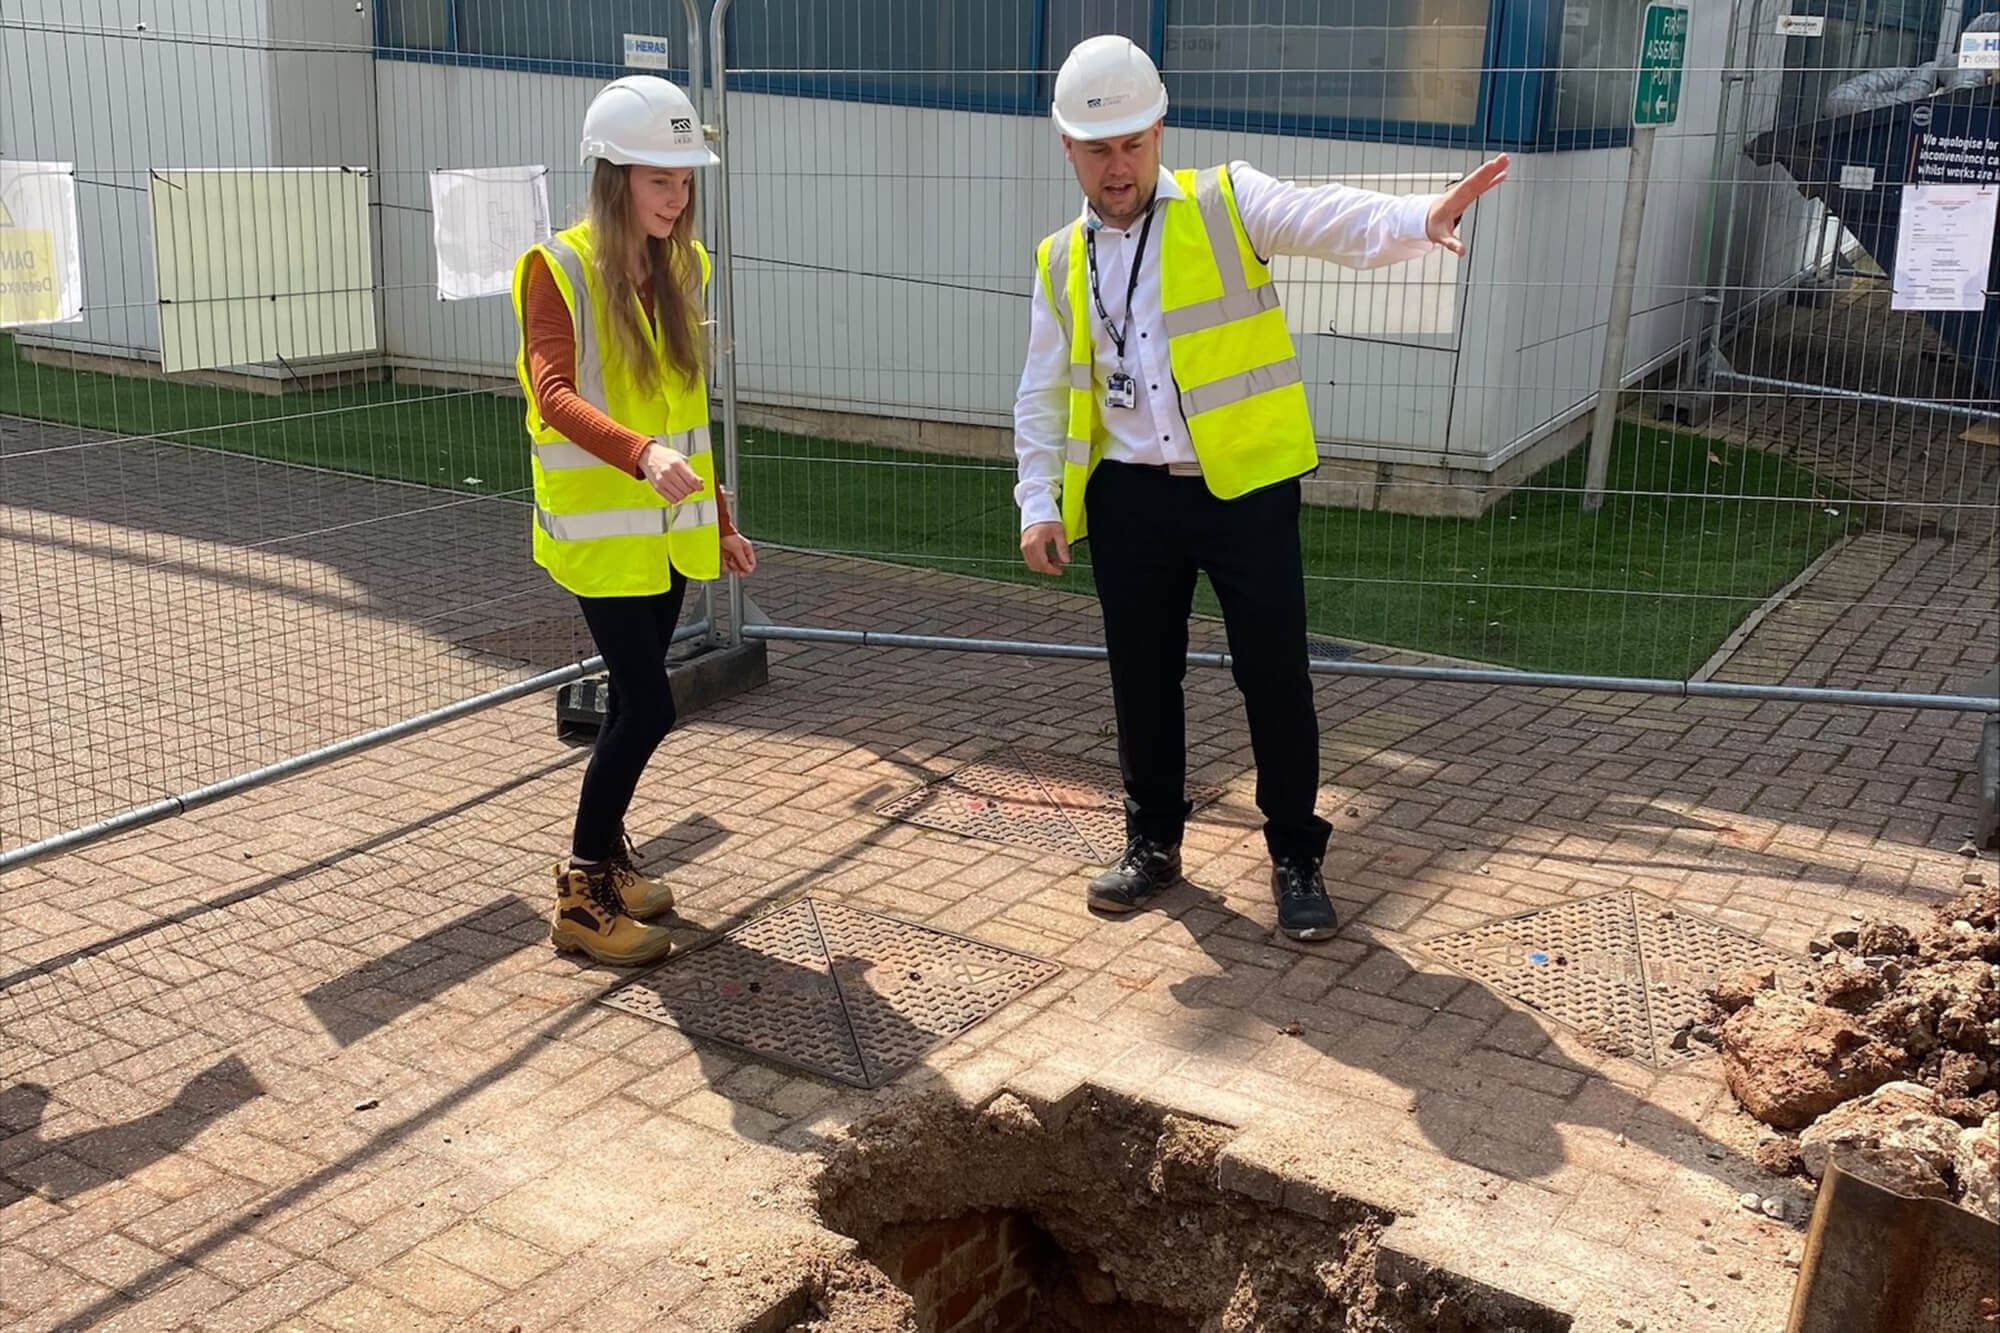 A female student analysis a hole in the ground with a male employer